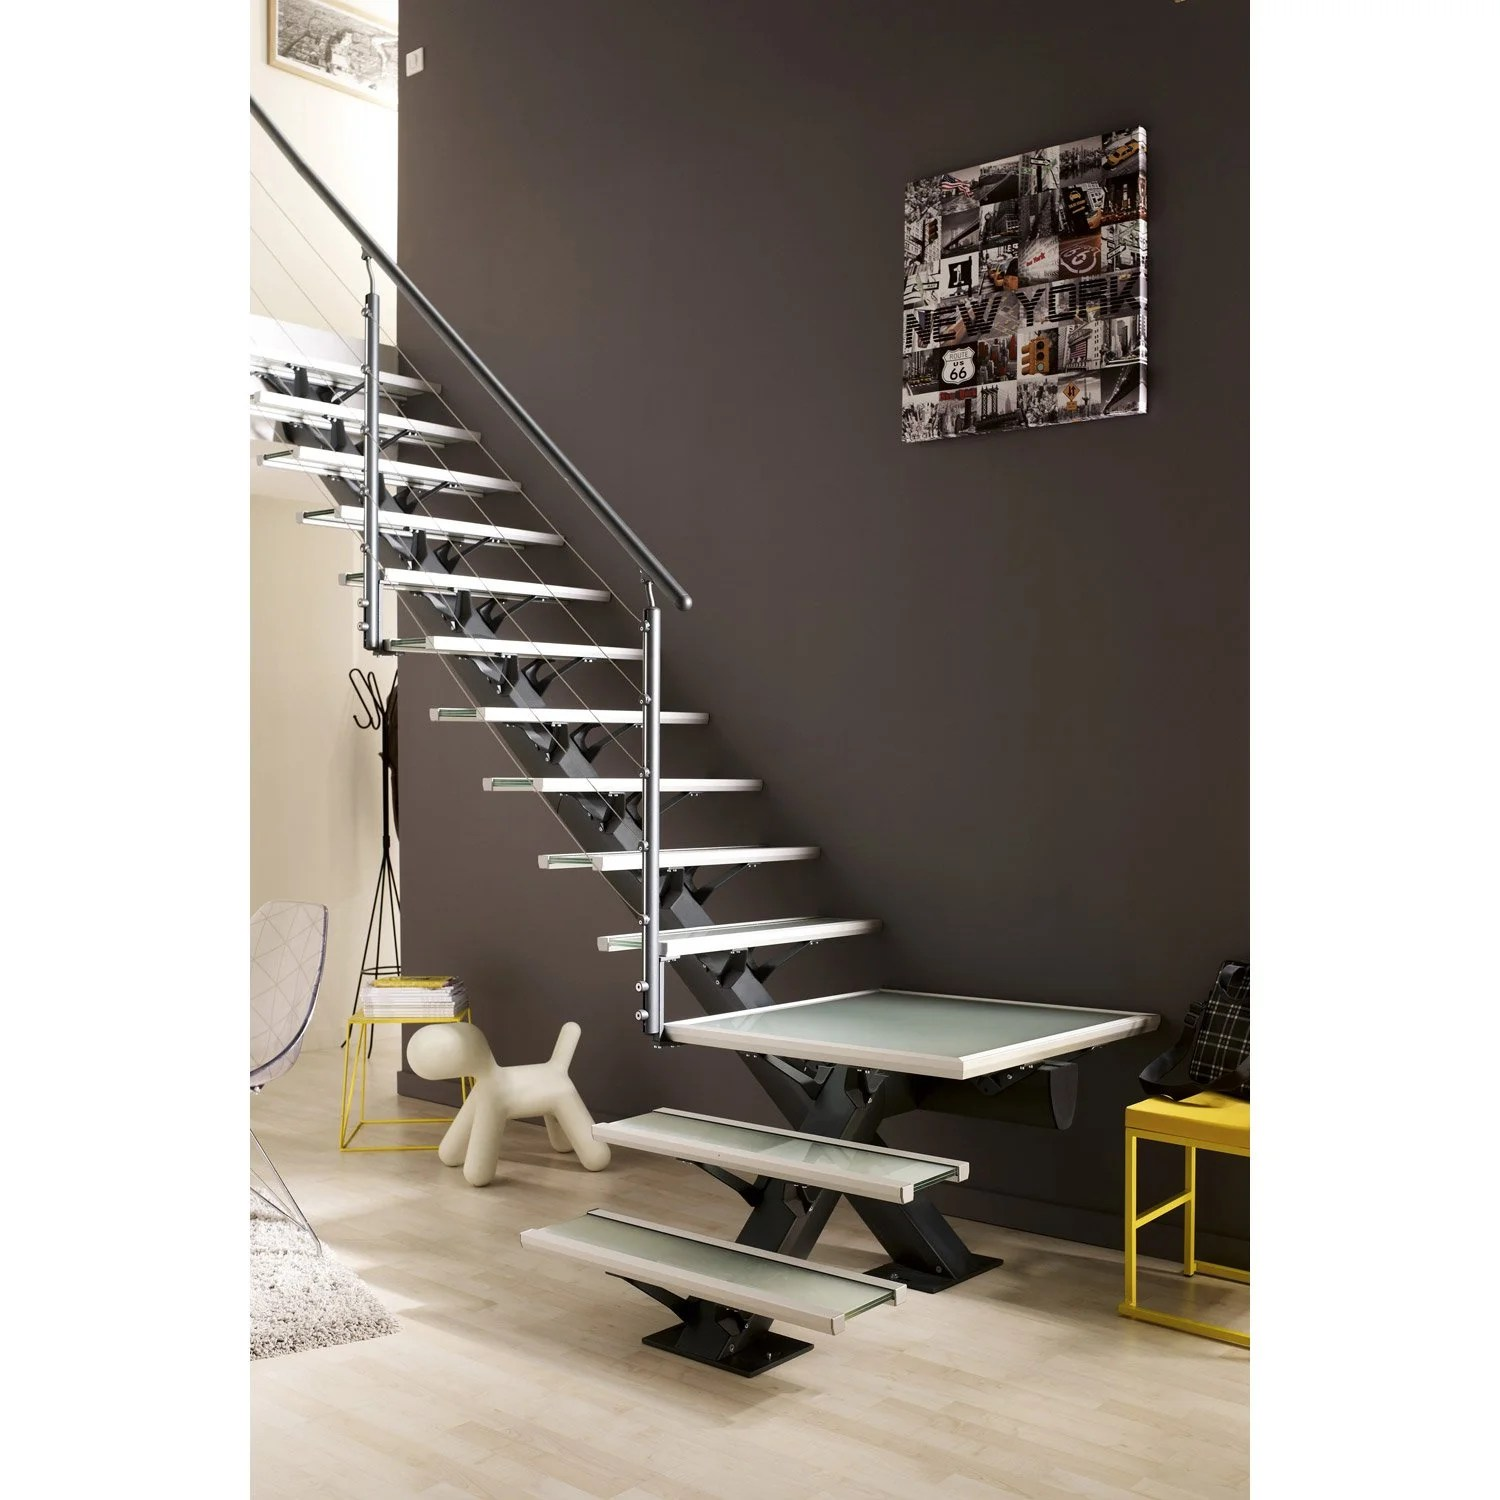 Escaliers Leroy Merlin Escalier Quart Tournant Mona Marches Structure Aluminium